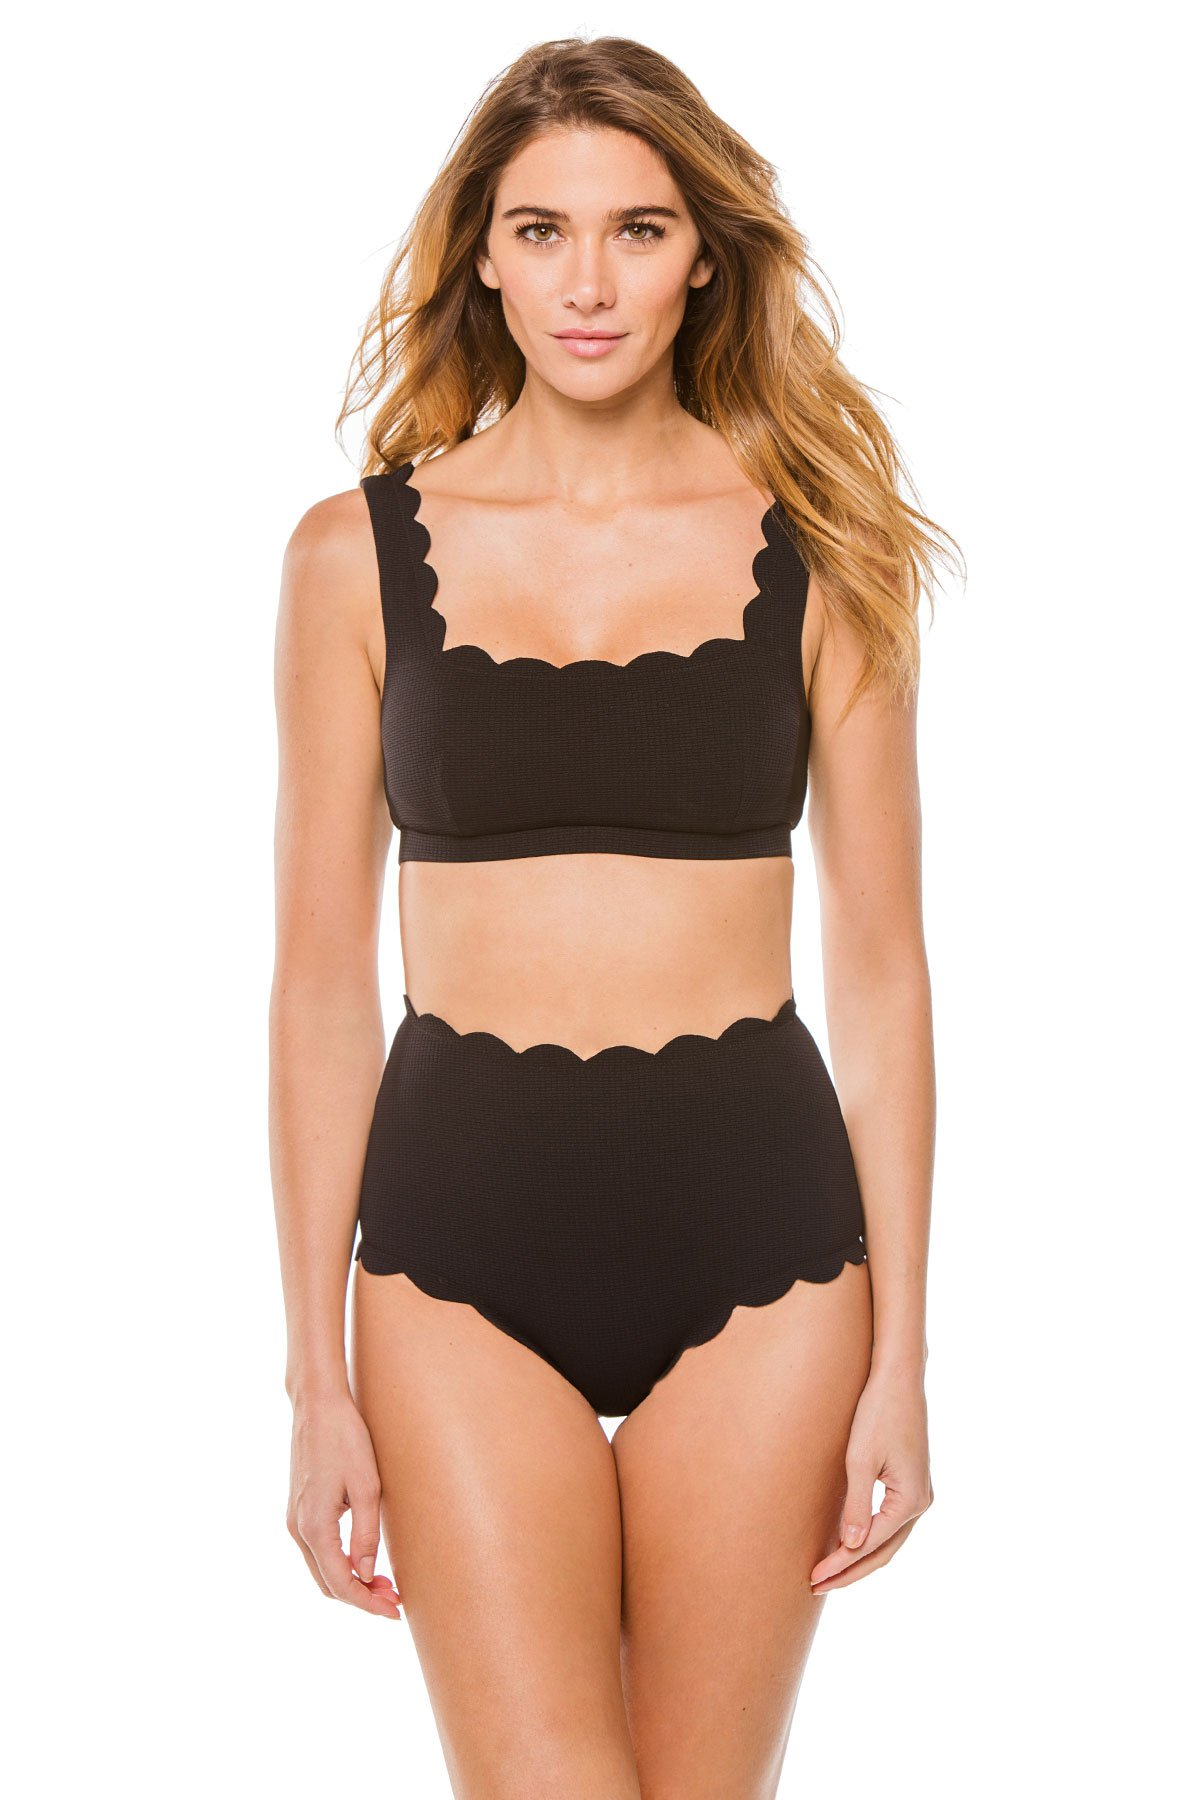 Palm Springs Scalloped Bralette Bikini Top - Black 11